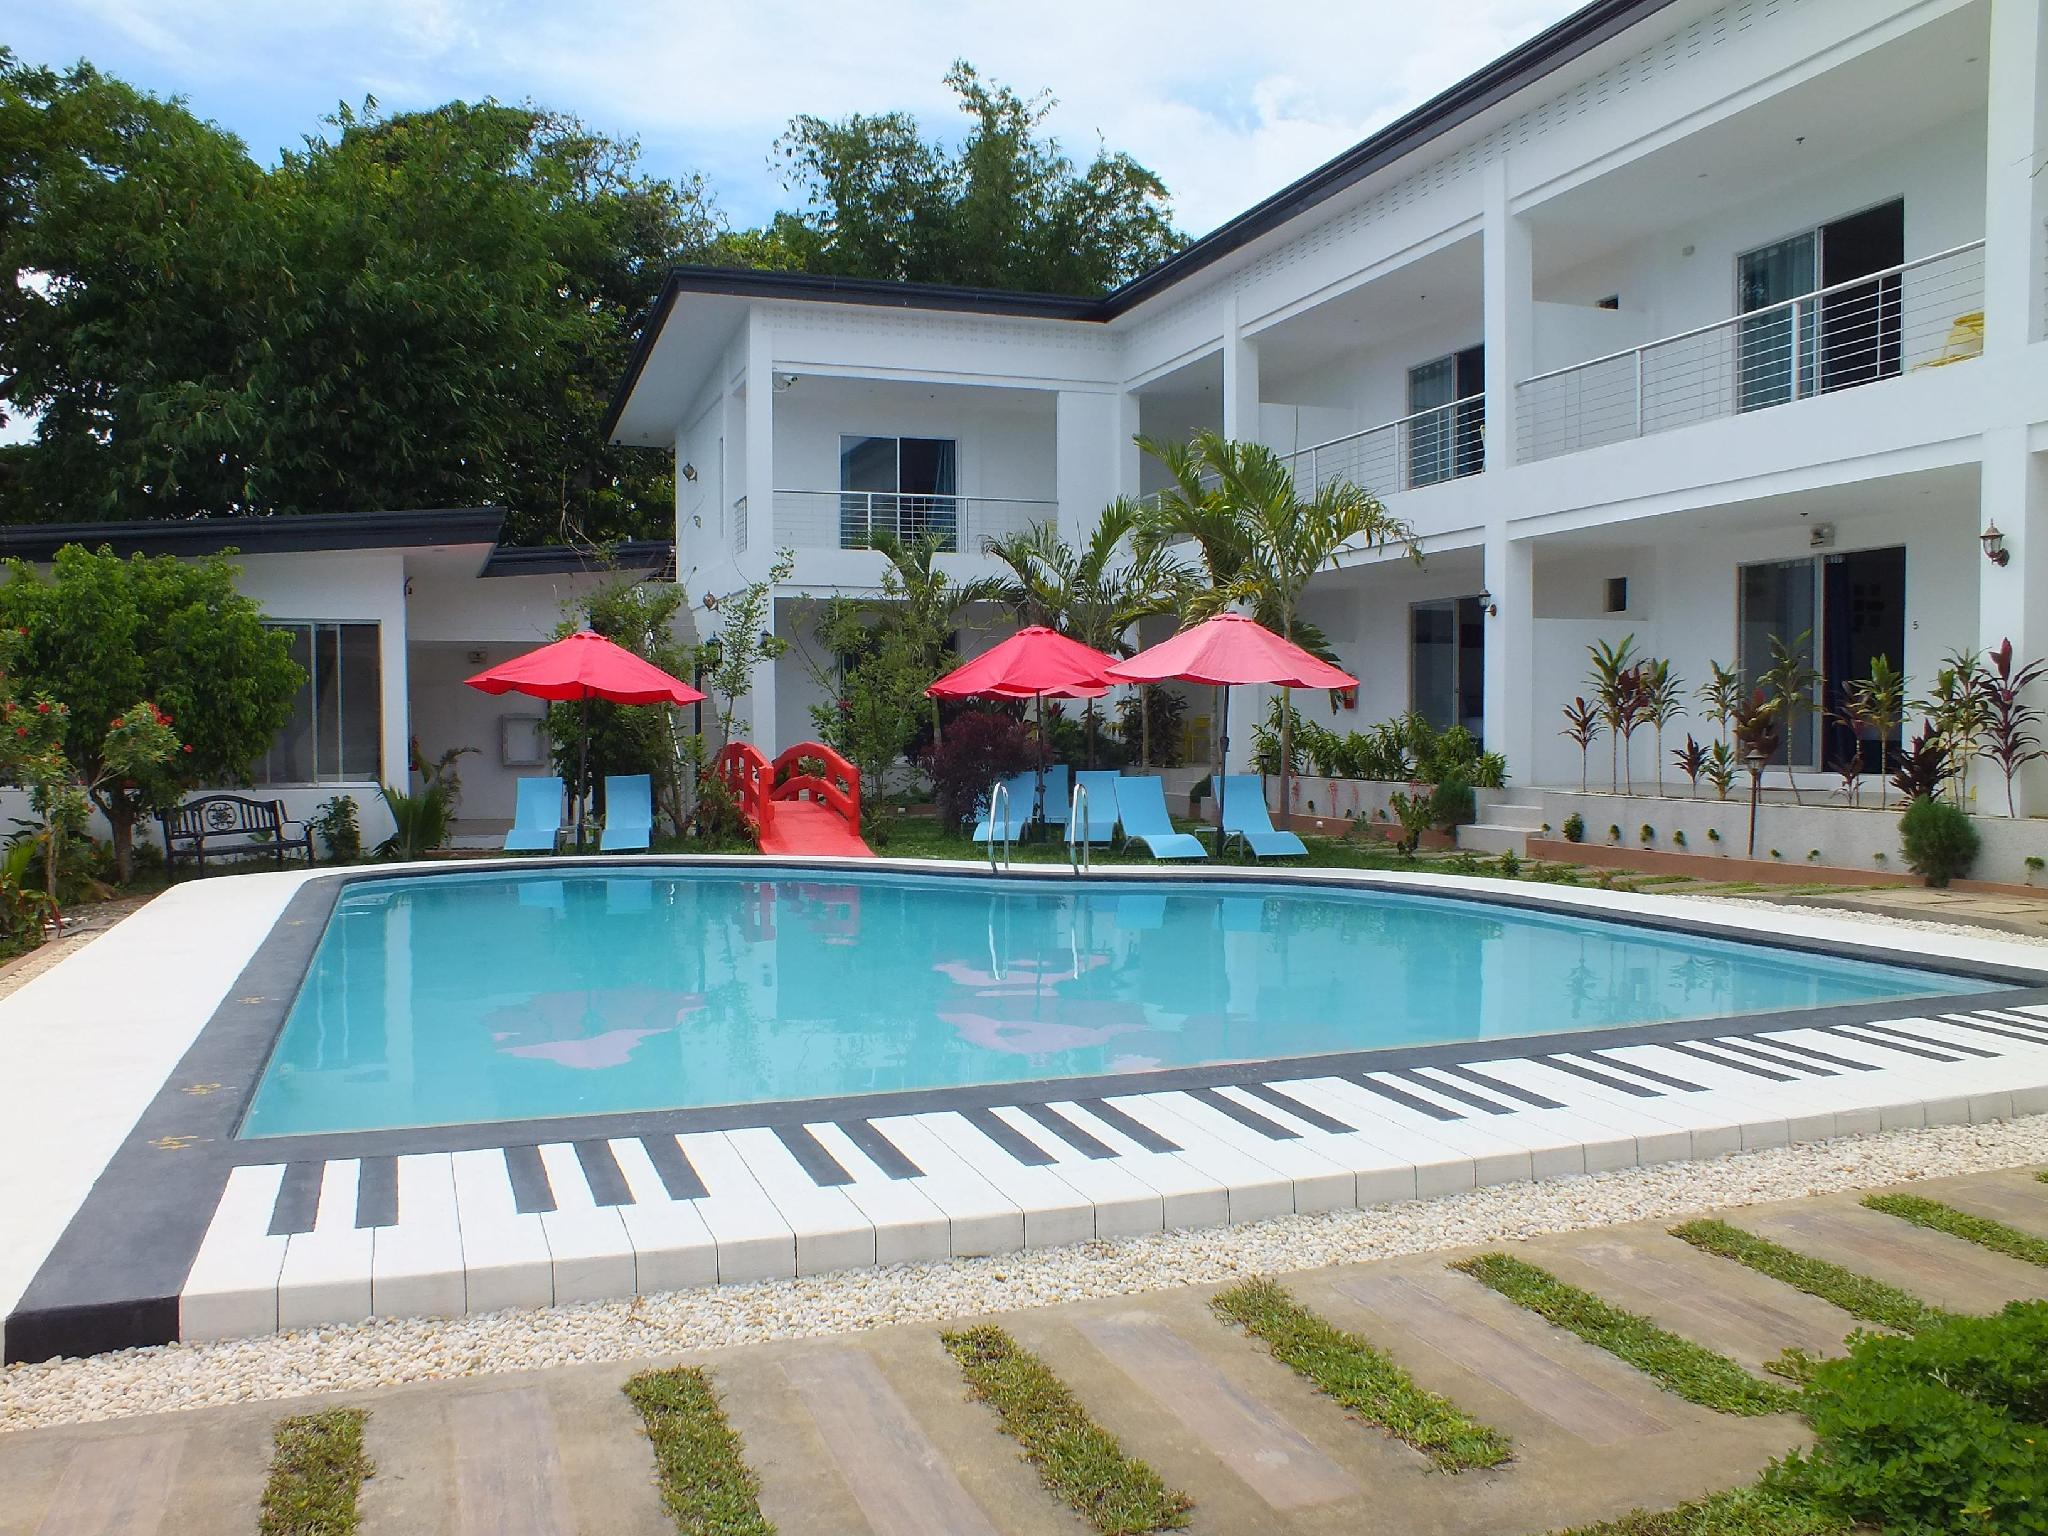 Paboreal boutique hotel puerto princesa palawan for Great boutique hotels